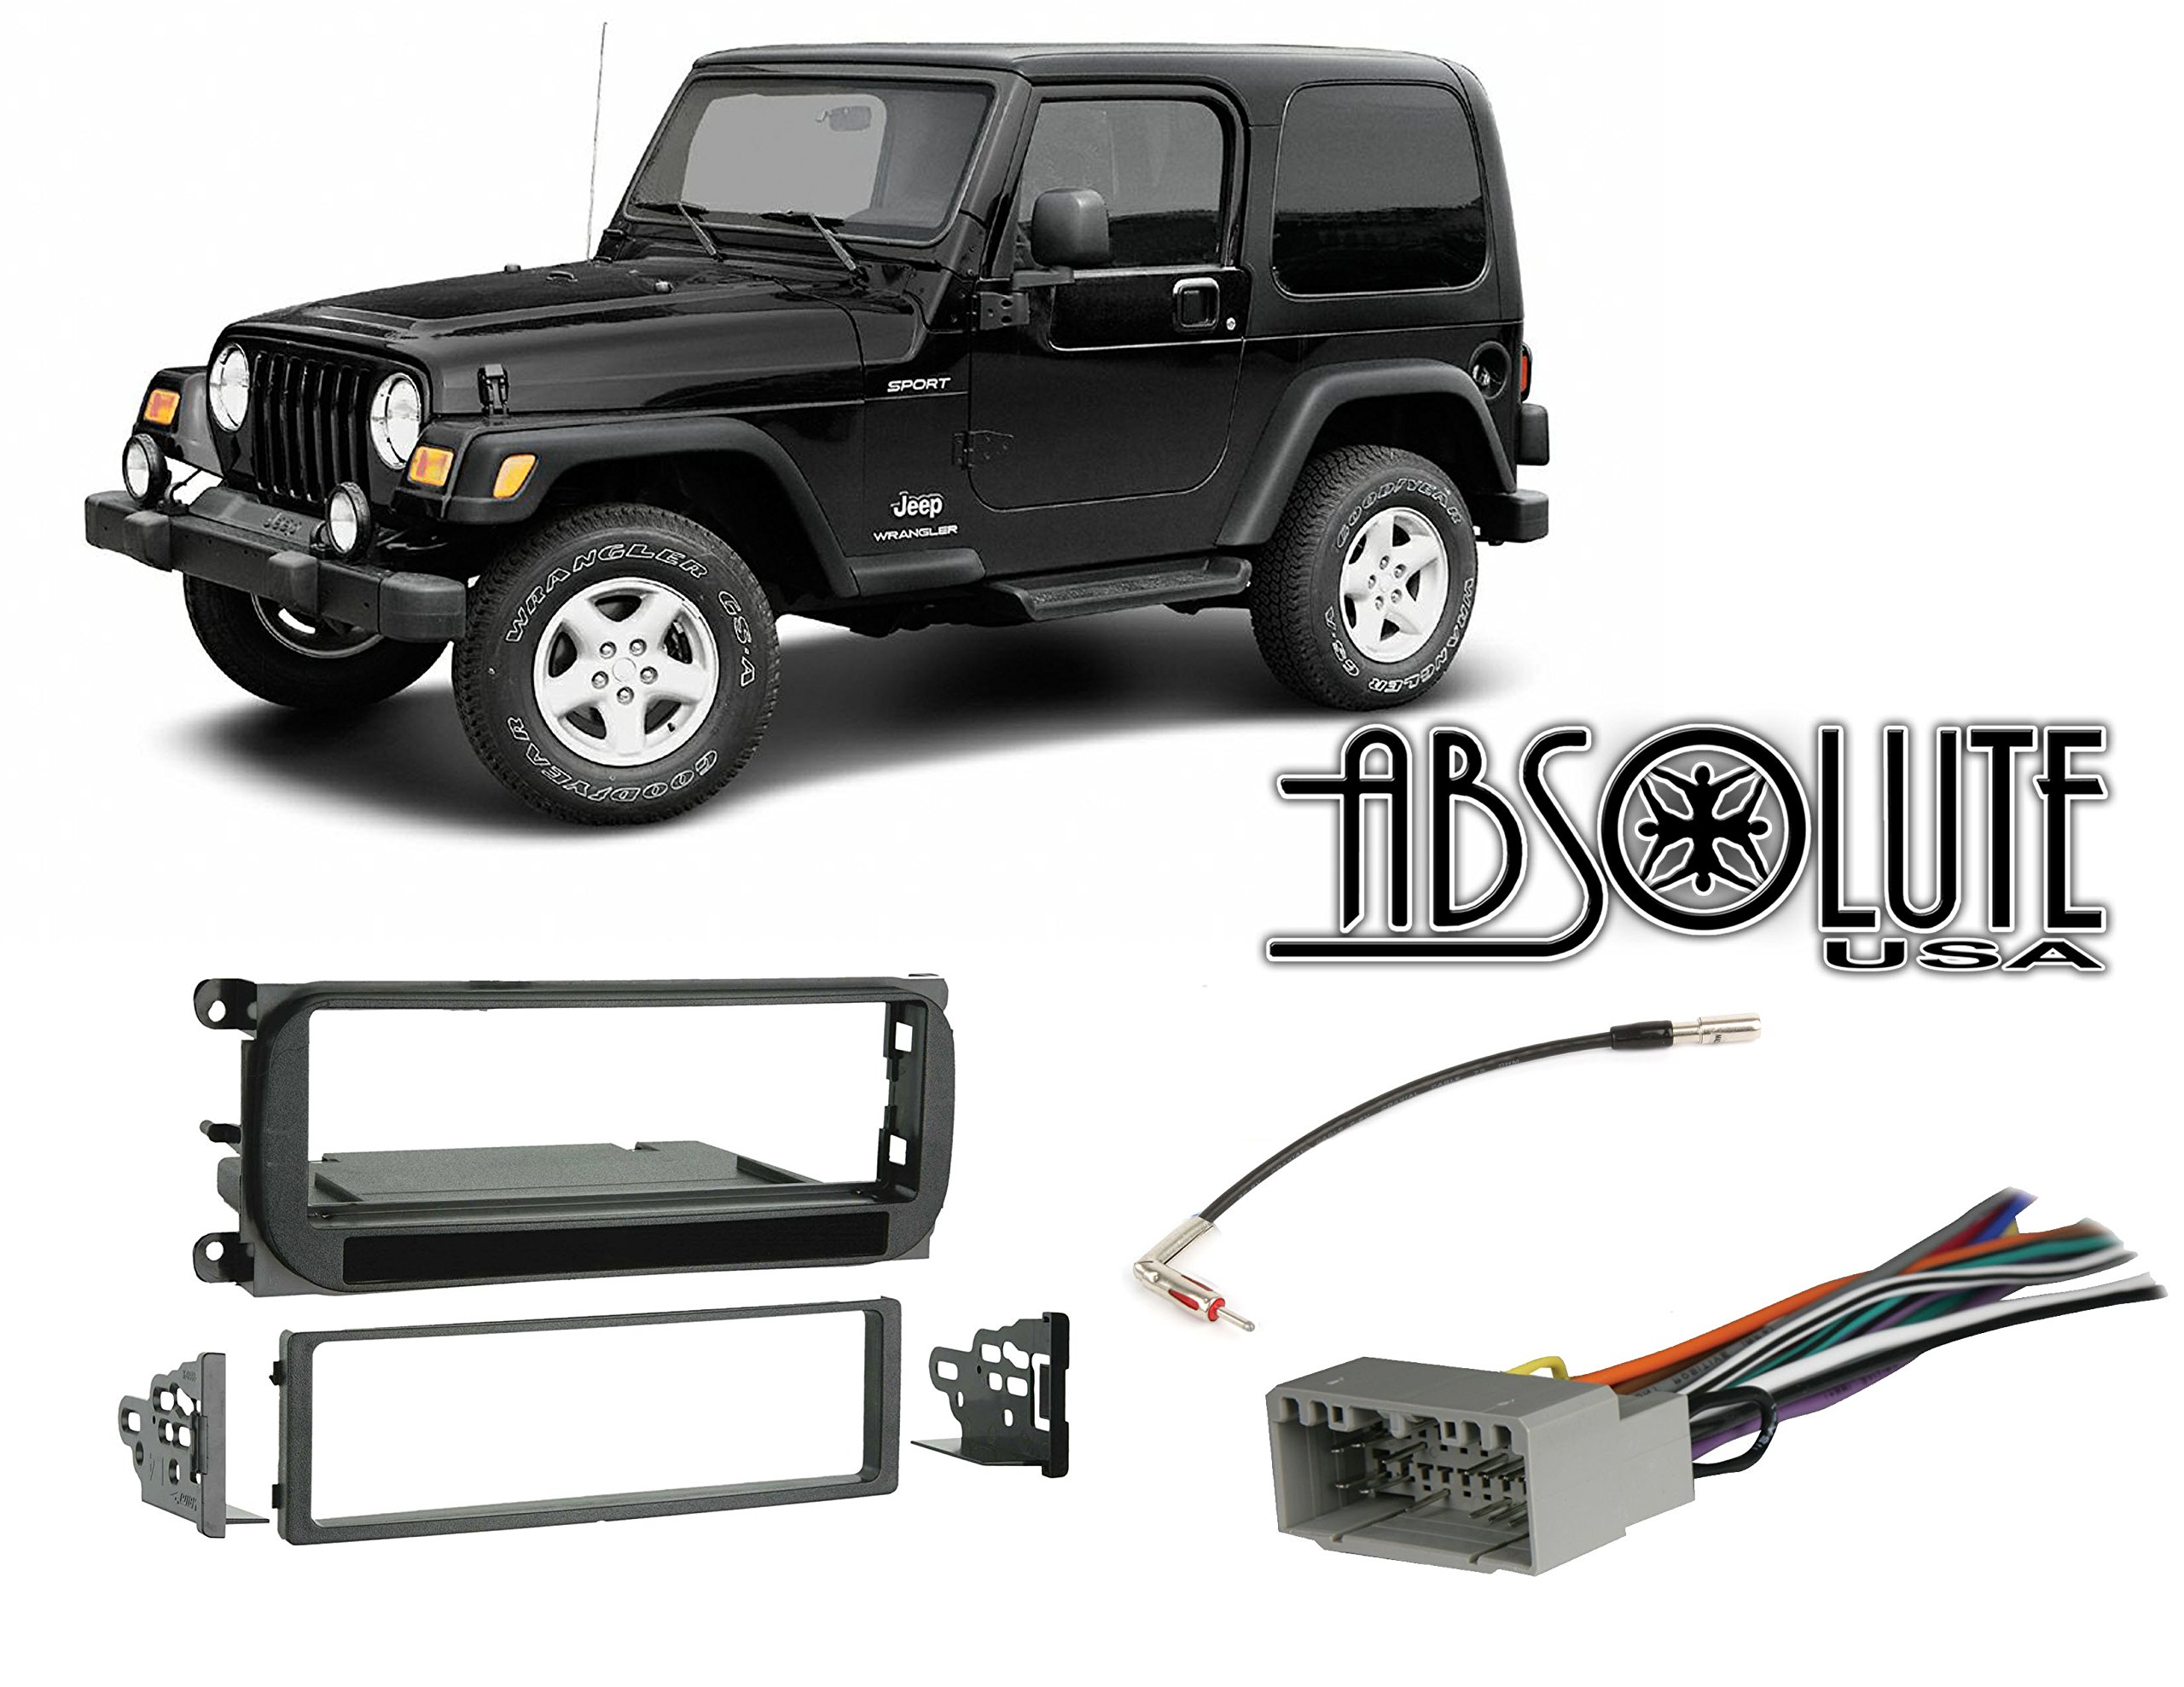 Cheap Jeep Wrangler Wire Harness Find Grand Cherokee Towing Hook Up Get Quotations Radio Stereo Install Dash Kit Antenna Adapter For